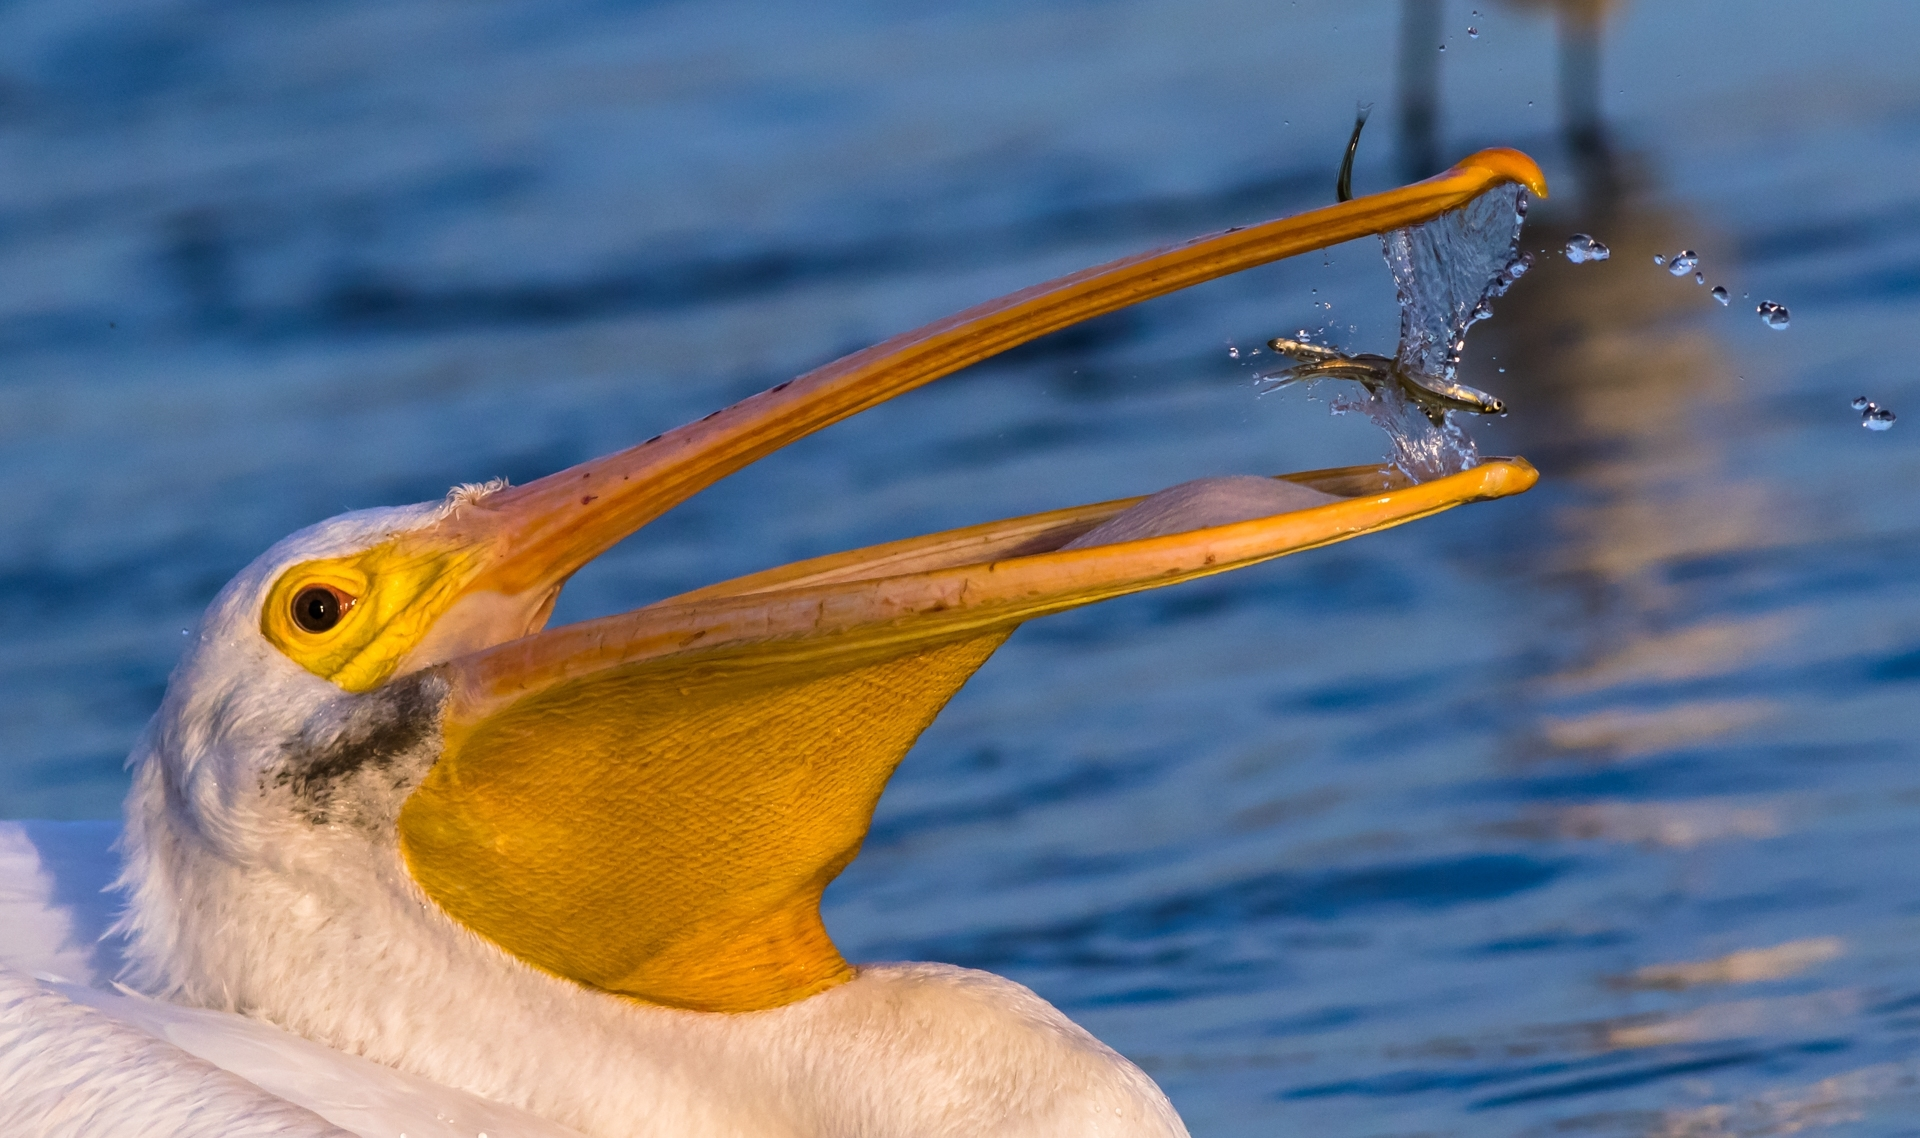 'American White Pelican at Shoreline MtView-feeding time' (NB 1 Place) by Josephina Shen - SC